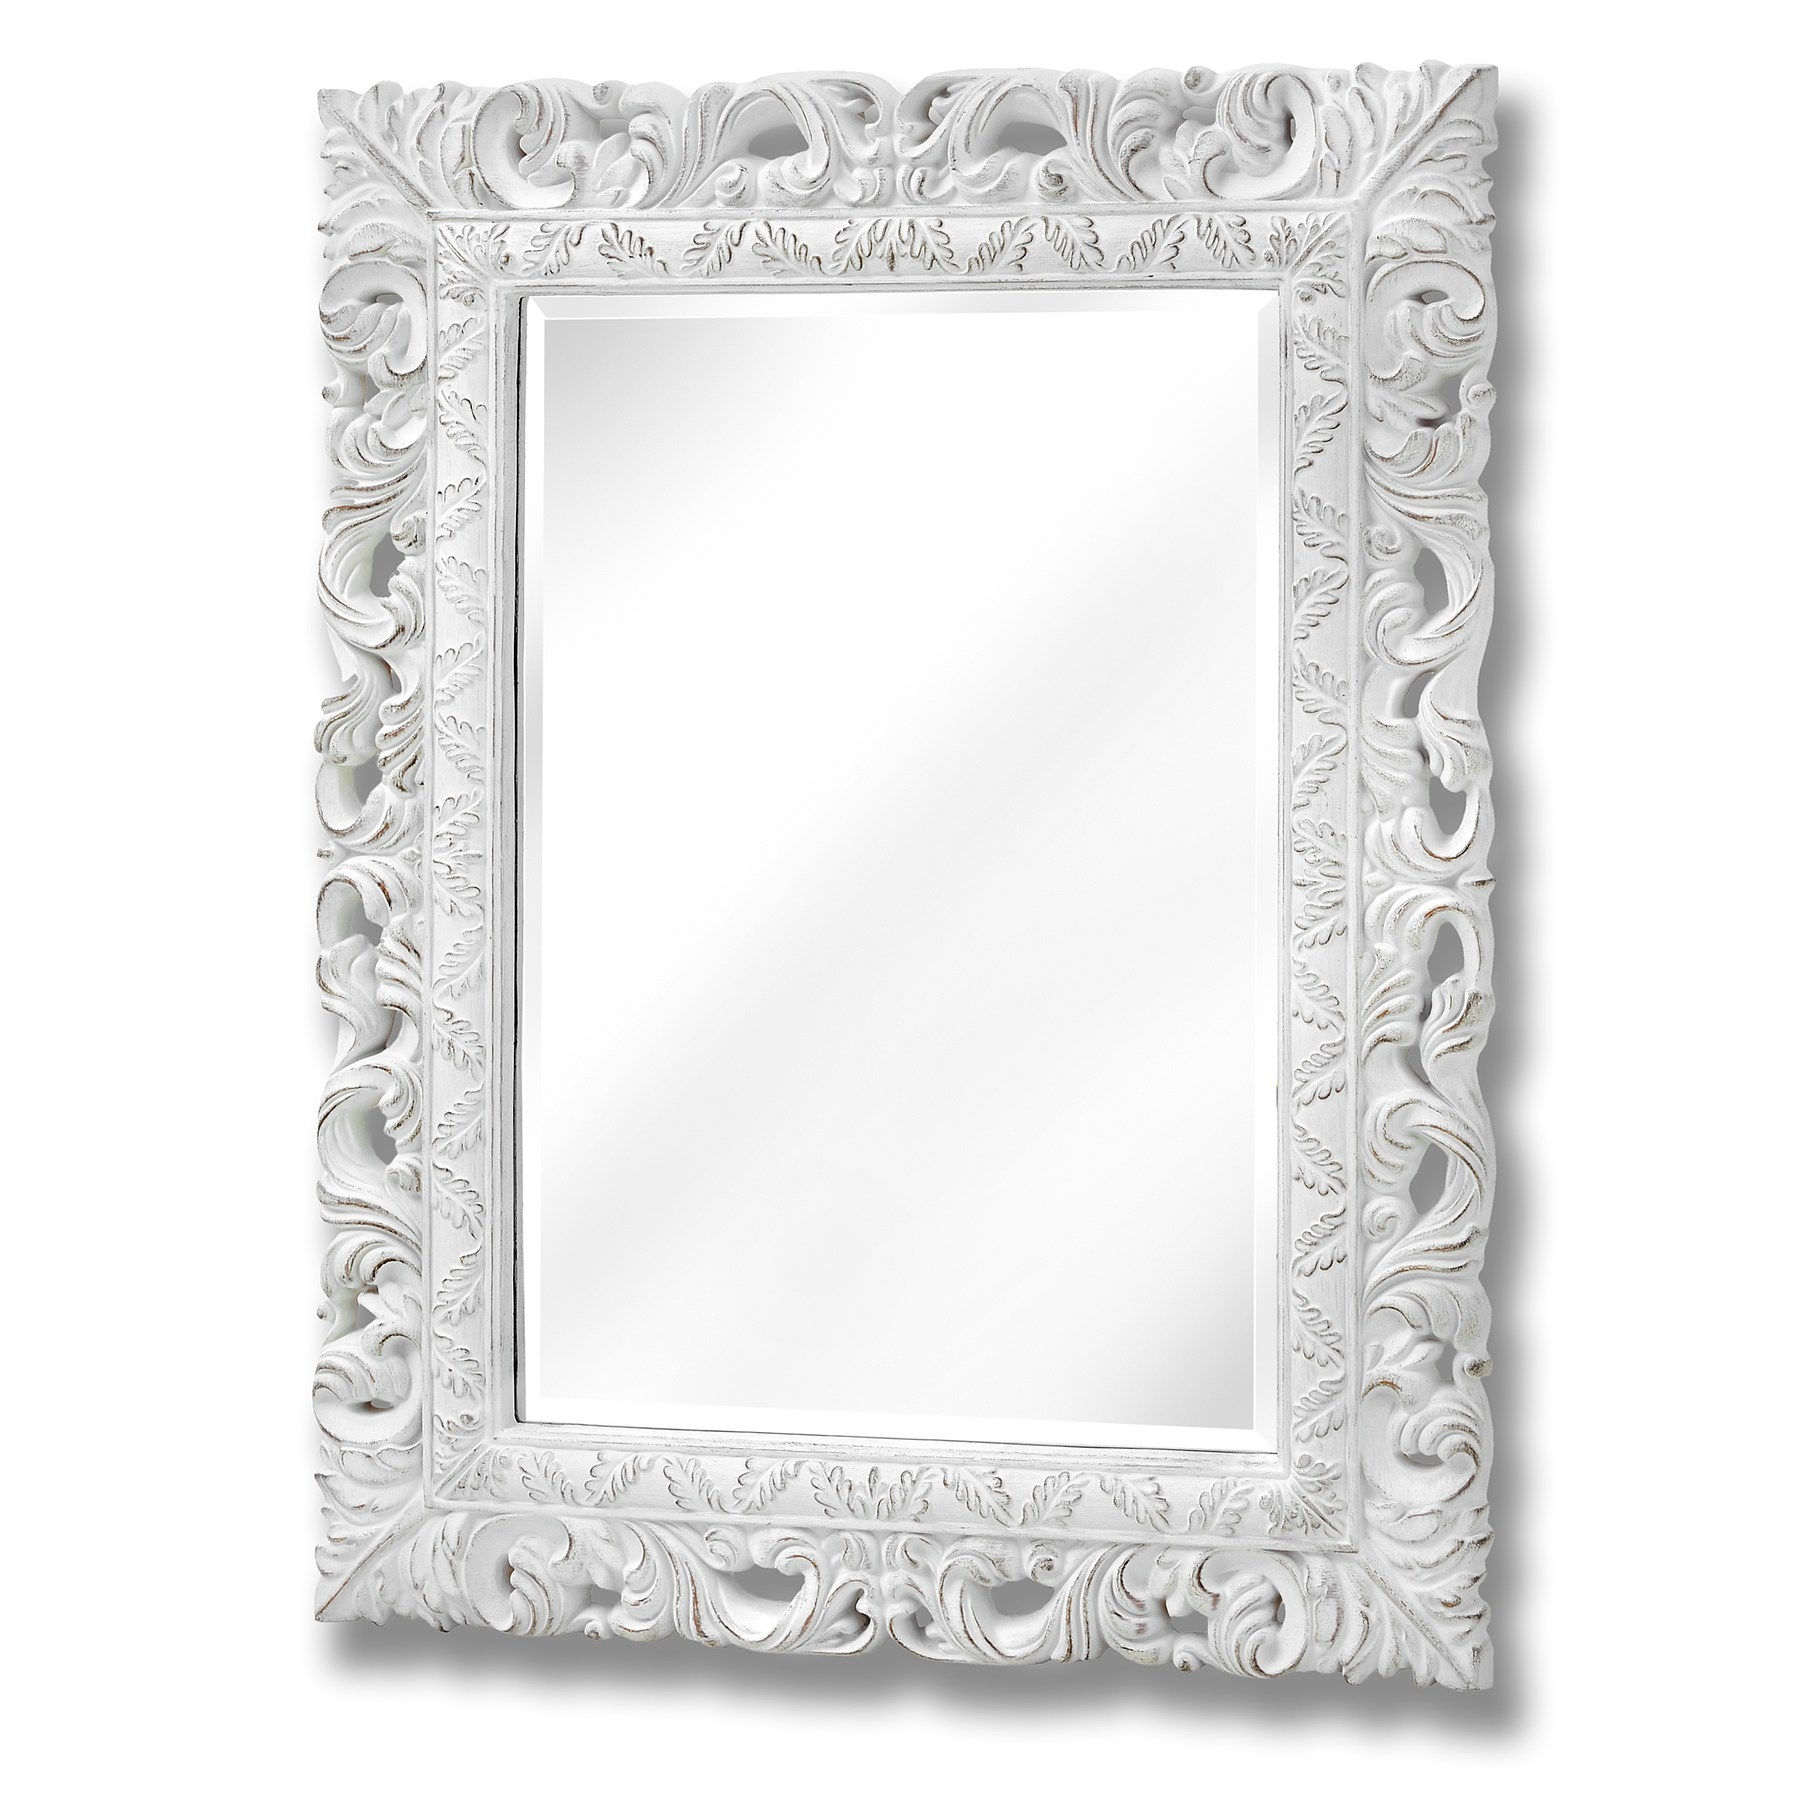 Antique White Ornate Leaf Wall Mirror From Baytree Interiors Pertaining To Ornate White Mirror (Image 1 of 15)